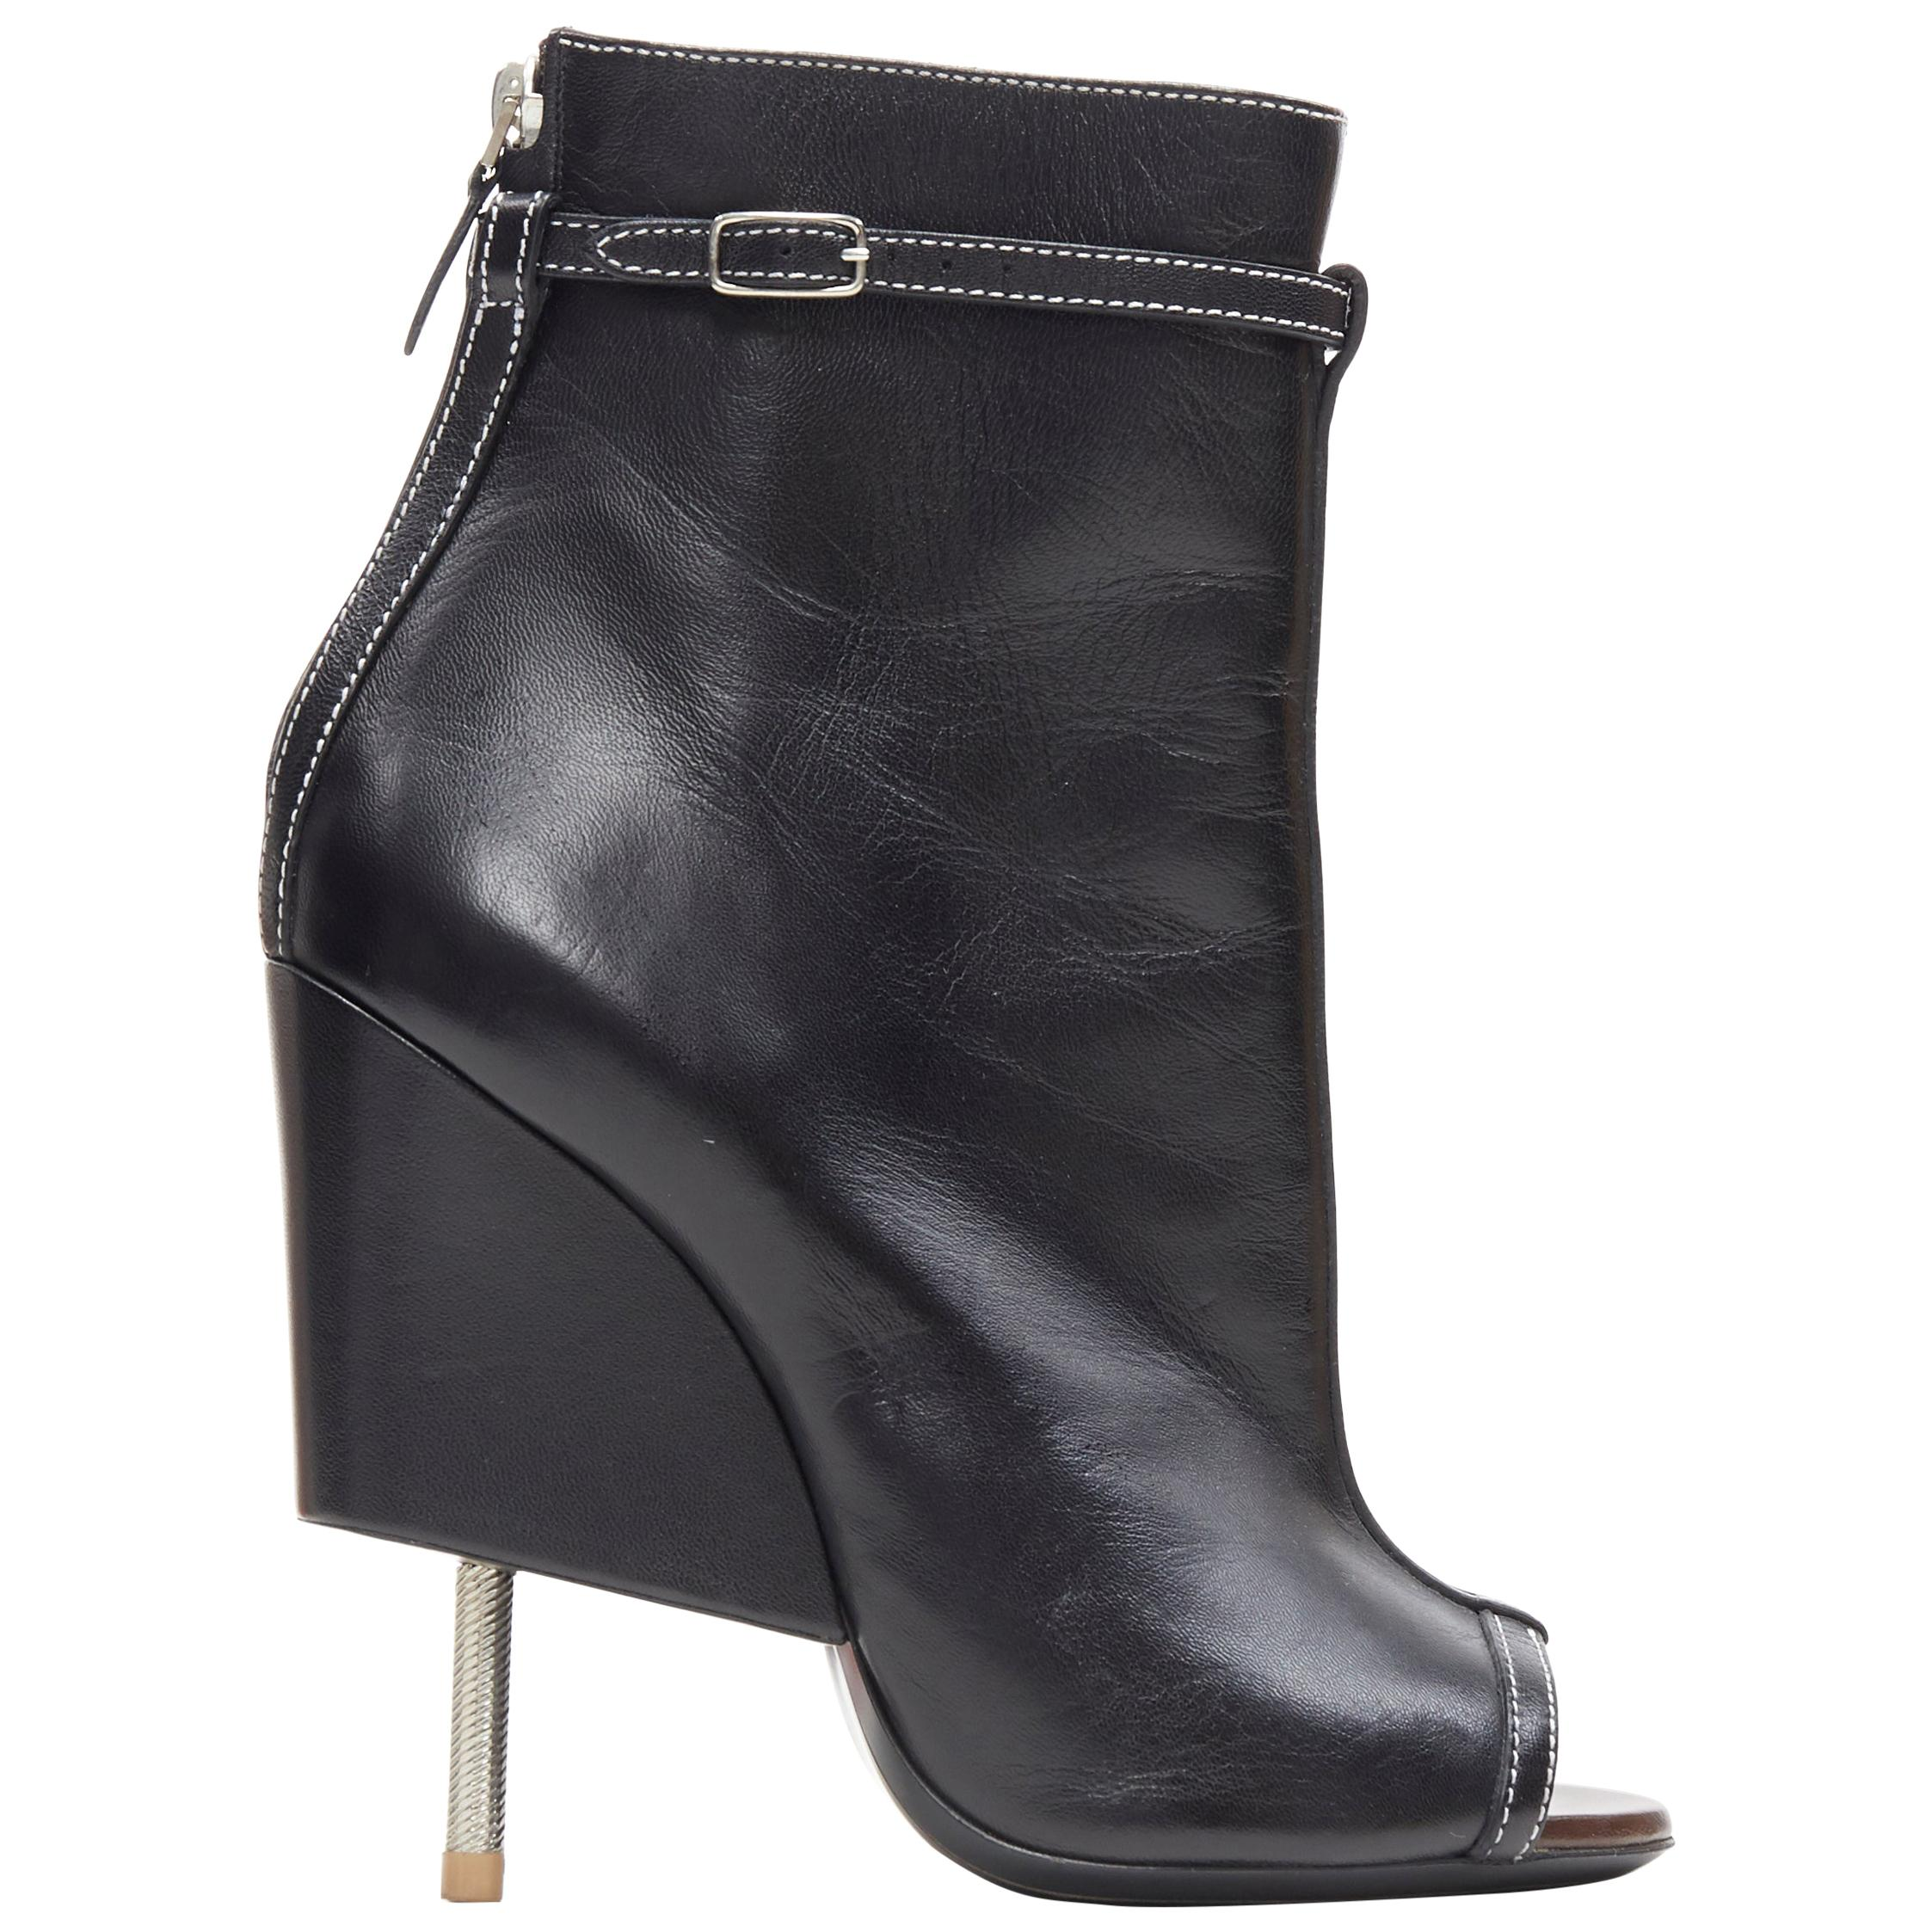 runway GIVENCHY TISCI black leather overstitched peep toe nail heel bootie EU38